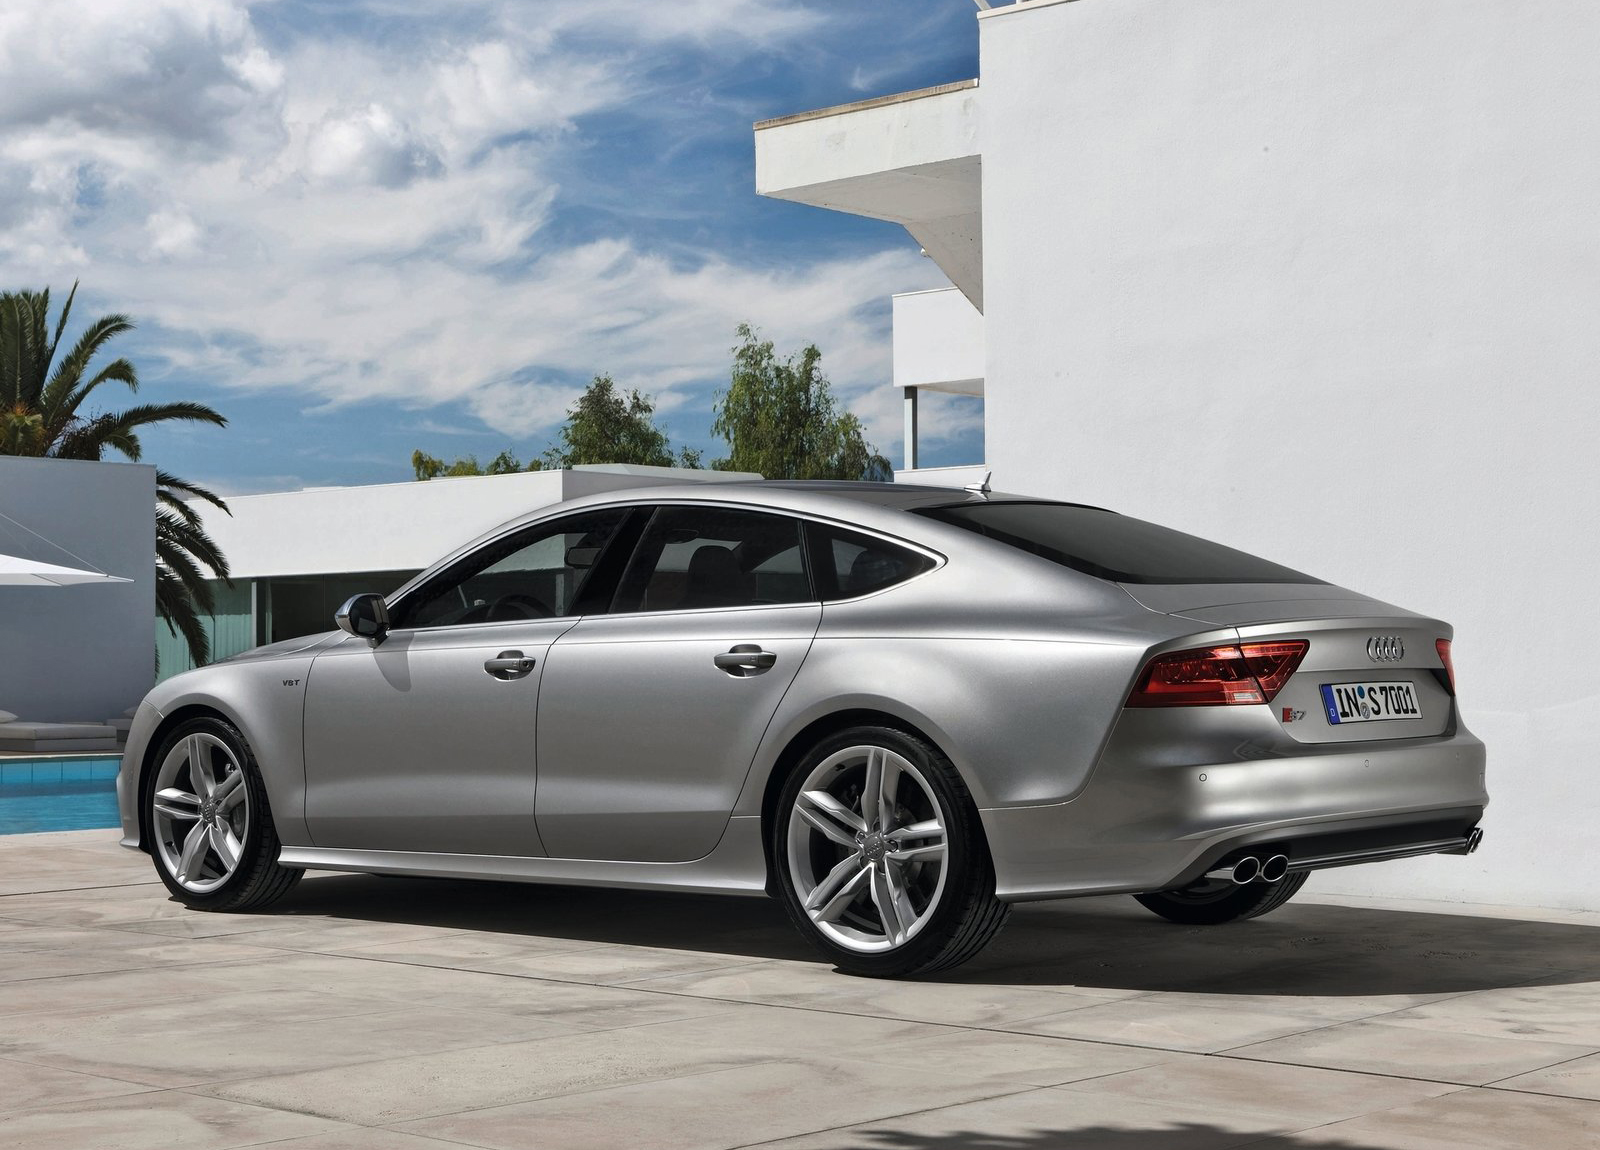 audi s7 hd wallpapers the world of audi. Black Bedroom Furniture Sets. Home Design Ideas